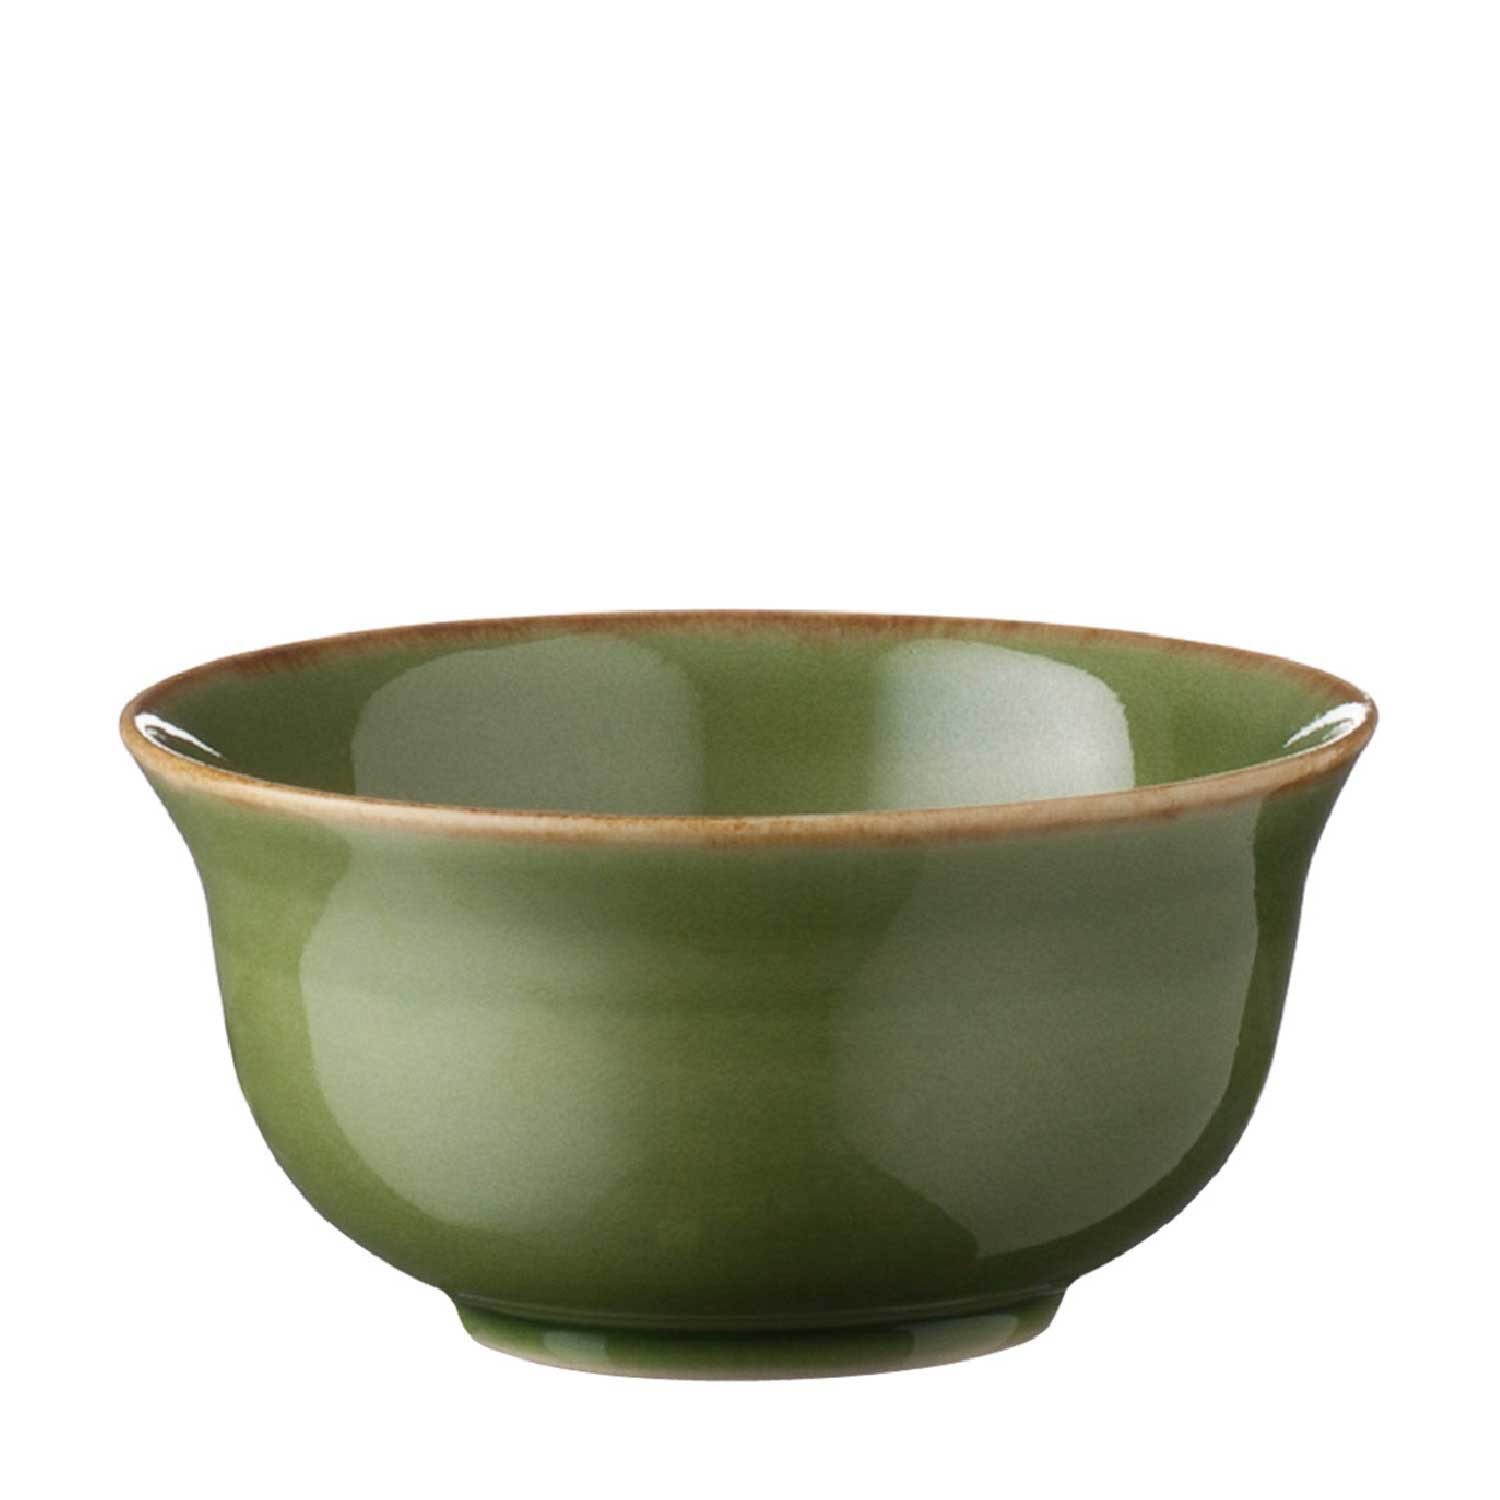 CLASSCIC CURVED RICE BOWL 5